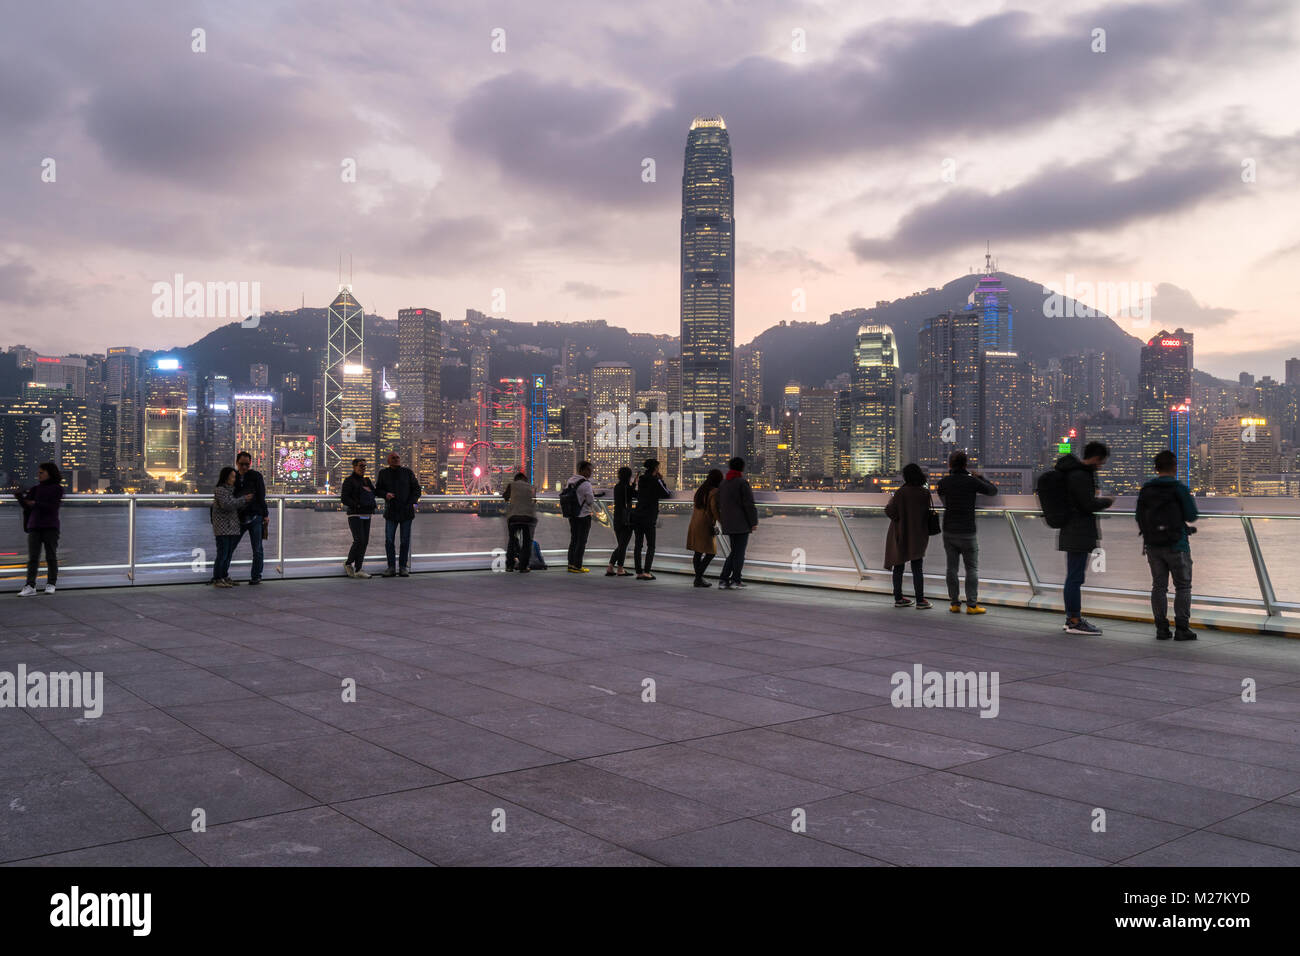 Hong Kong - January 25 2018: People taking picutre and enjoying the view from the top of the Ocean cruise terminal - Stock Image